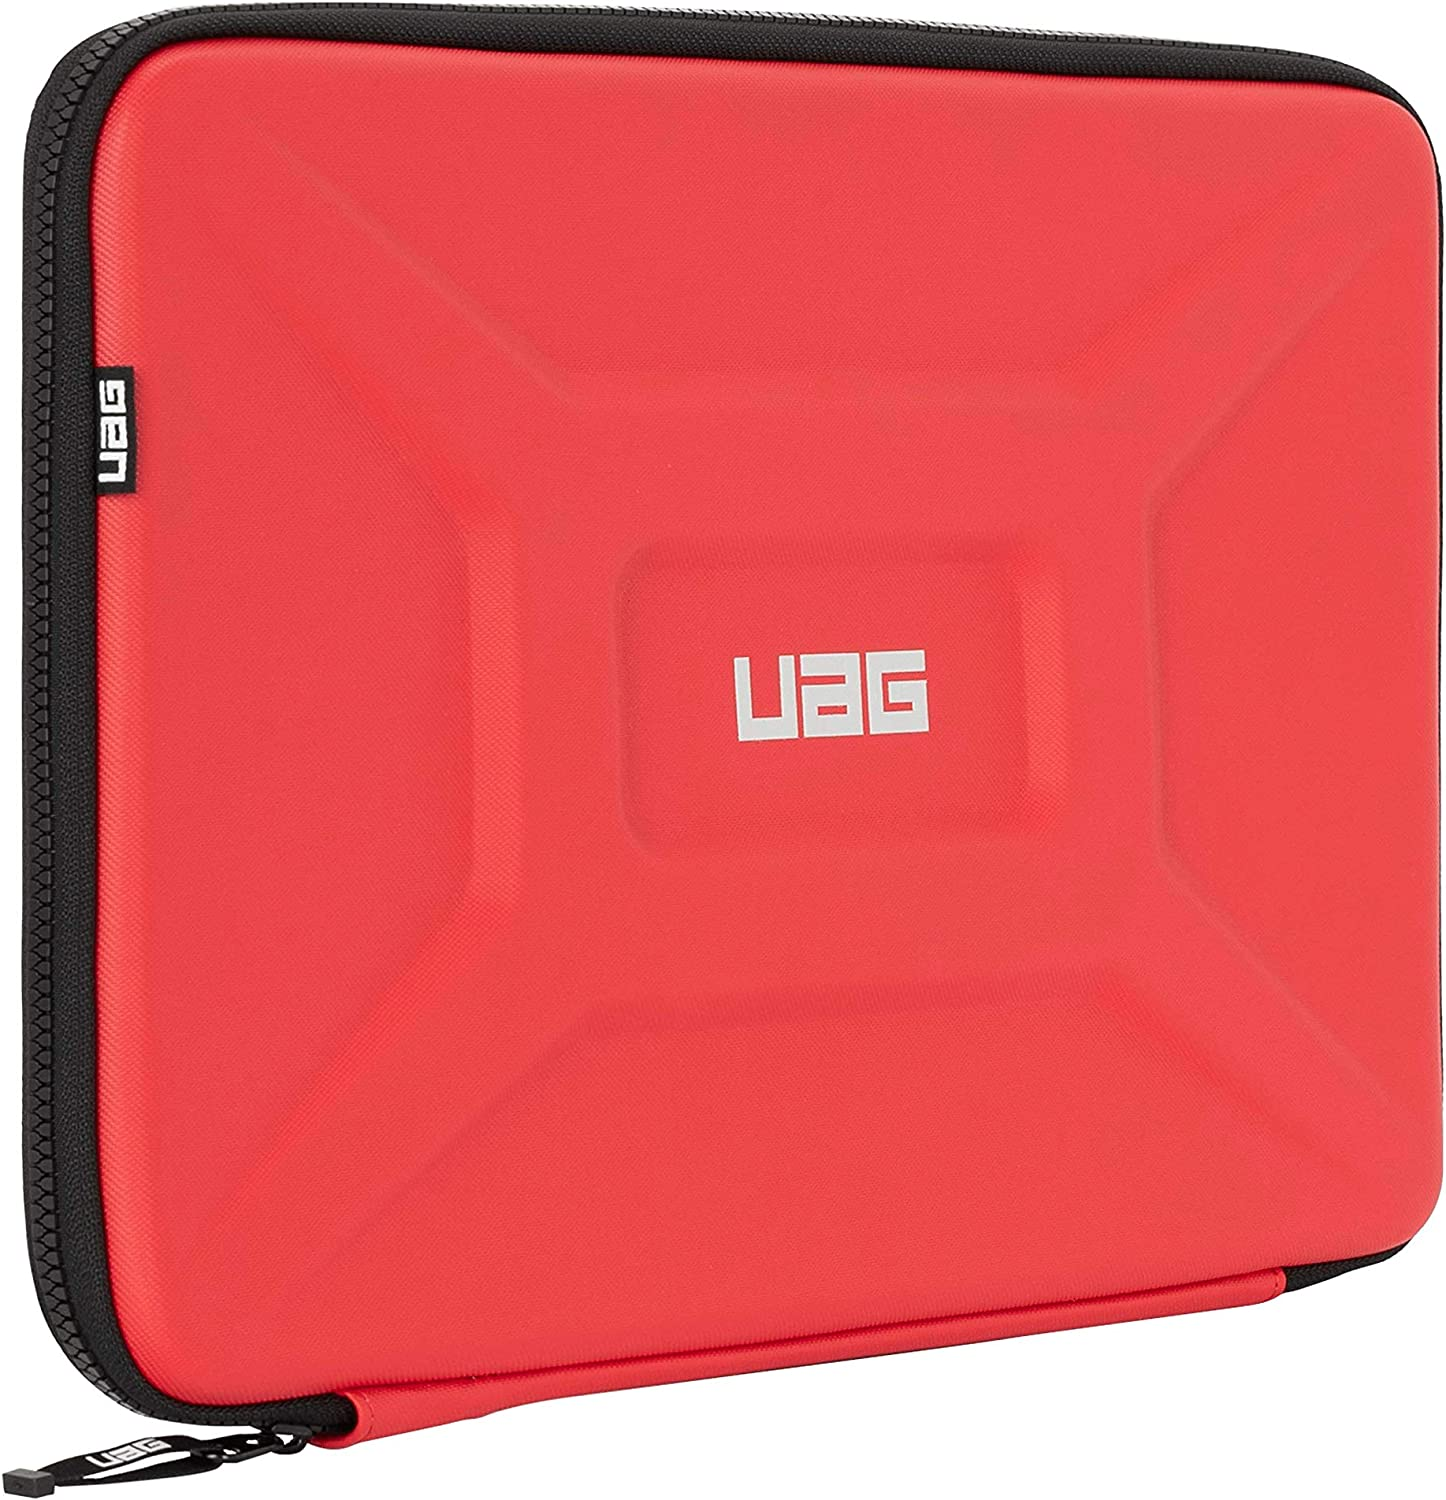 "URBAN ARMOR GEAR UAG Large Sleeve for 15"" Devices Magma Rugged Tactile Grip Weatherproof Protective Slim Secure Laptop/Tablet Sleeve"